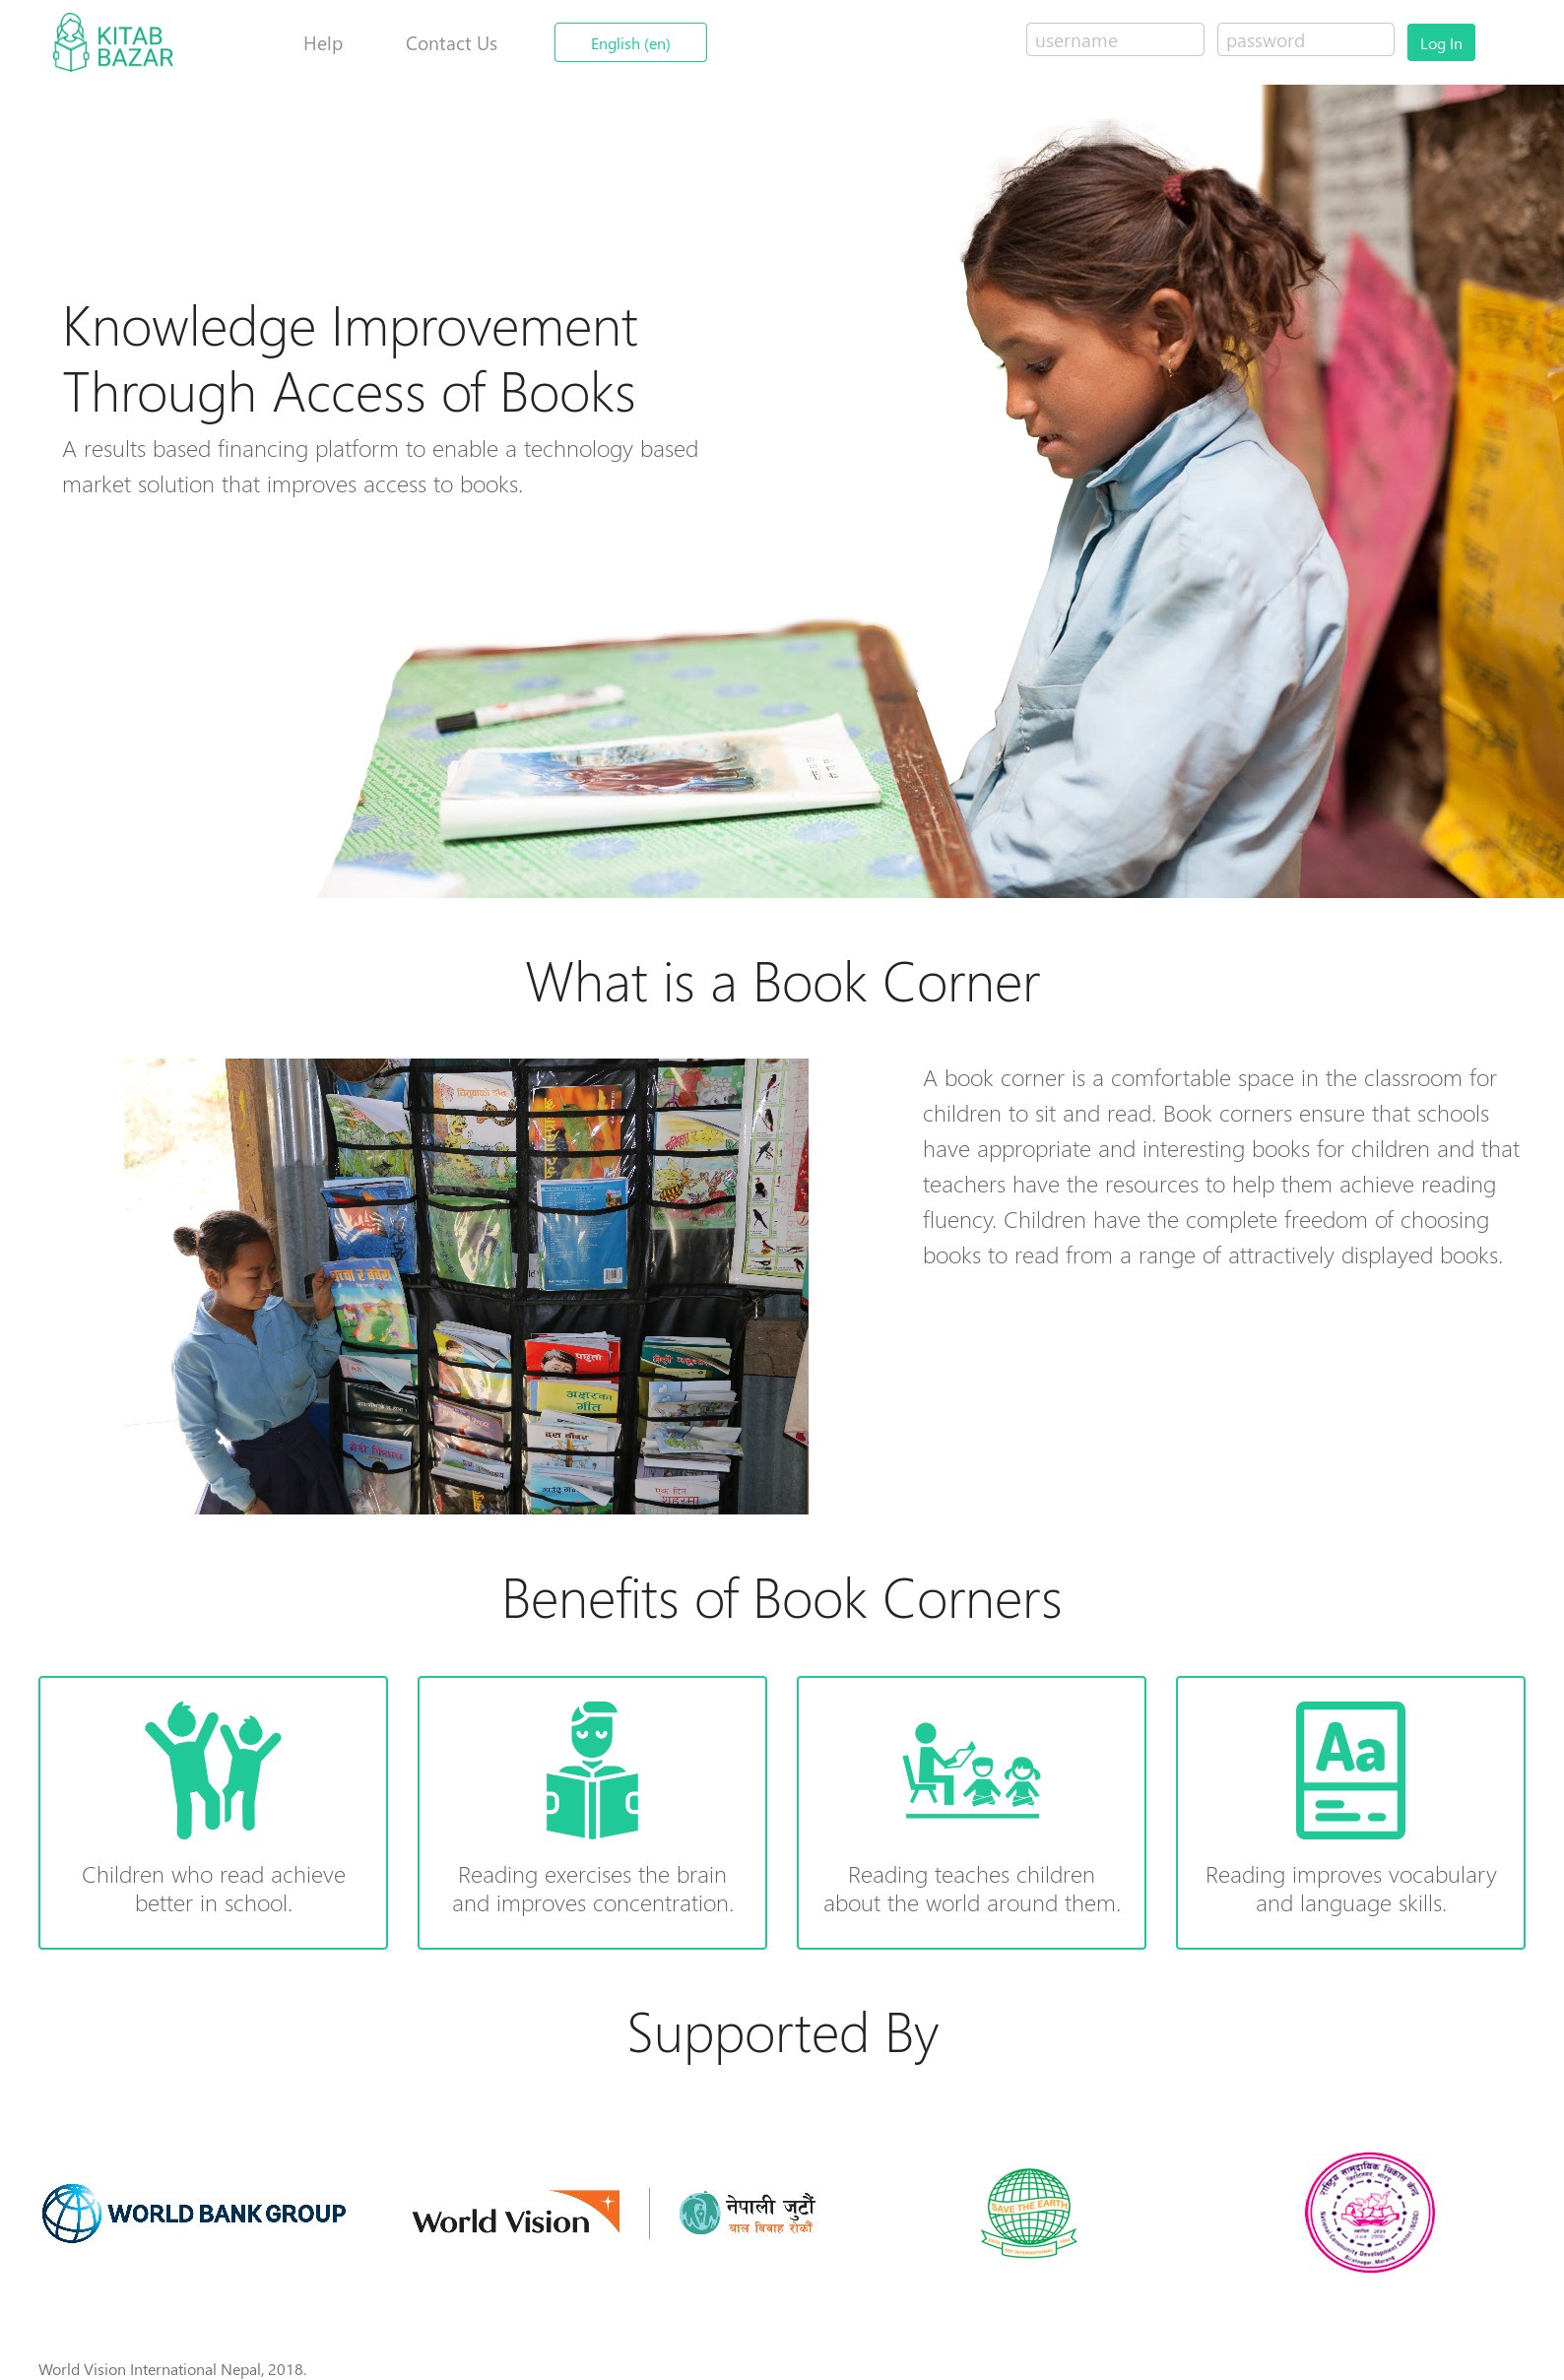 Digital Platform Empowering Reading And Learning In Nepal's